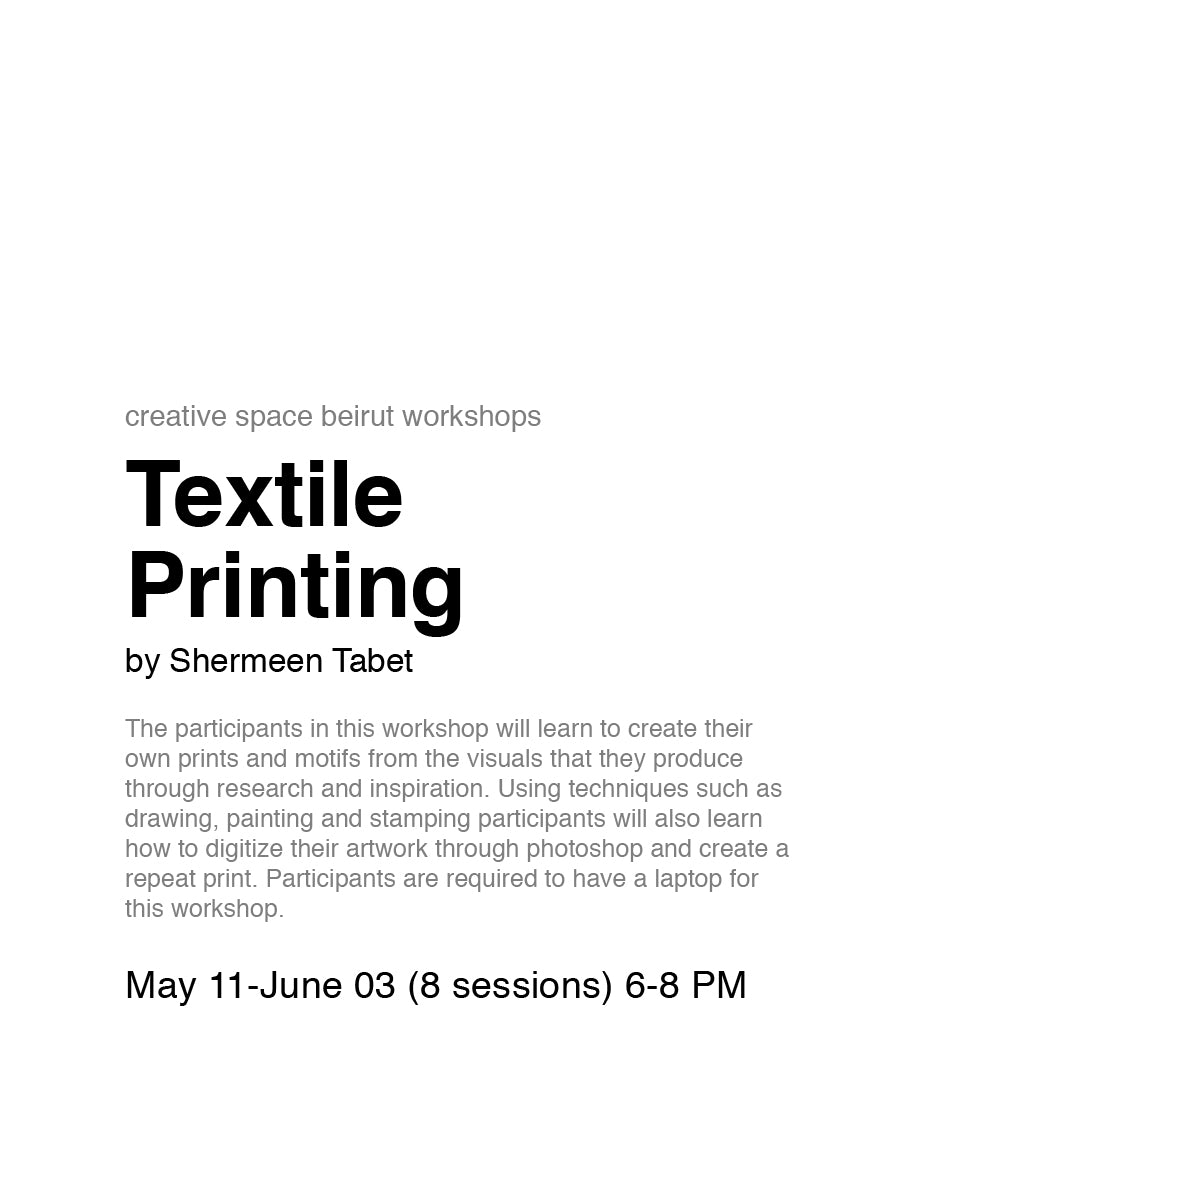 Textile Printing by Shermeen Tabet